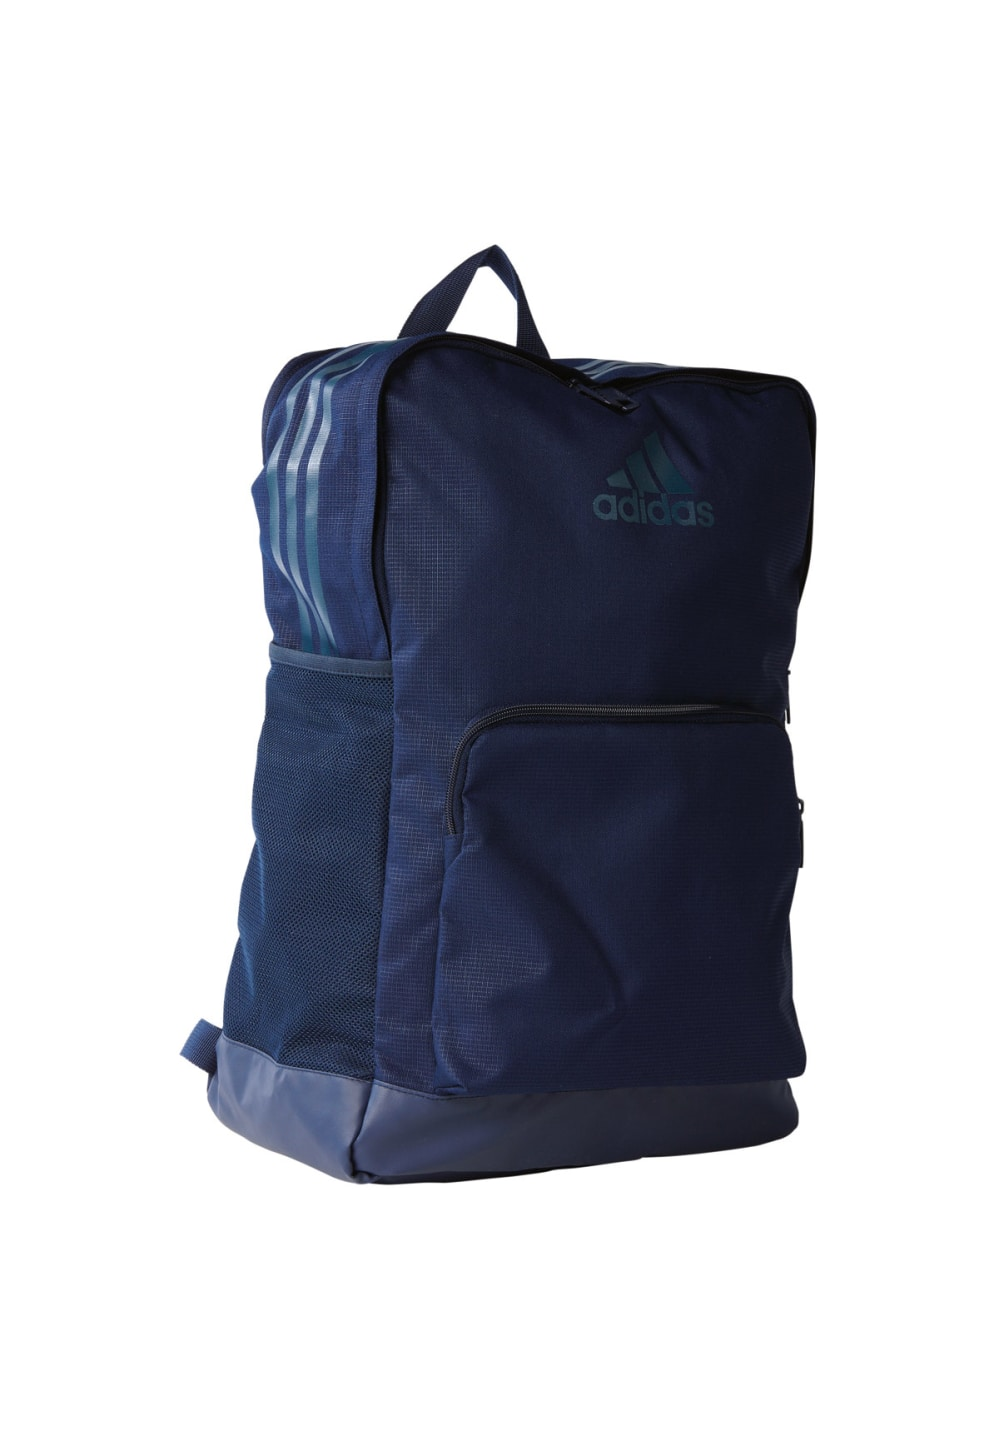 Bleu Adidas Sac Dos 3s Backpack Performance À XOuTwikZPl